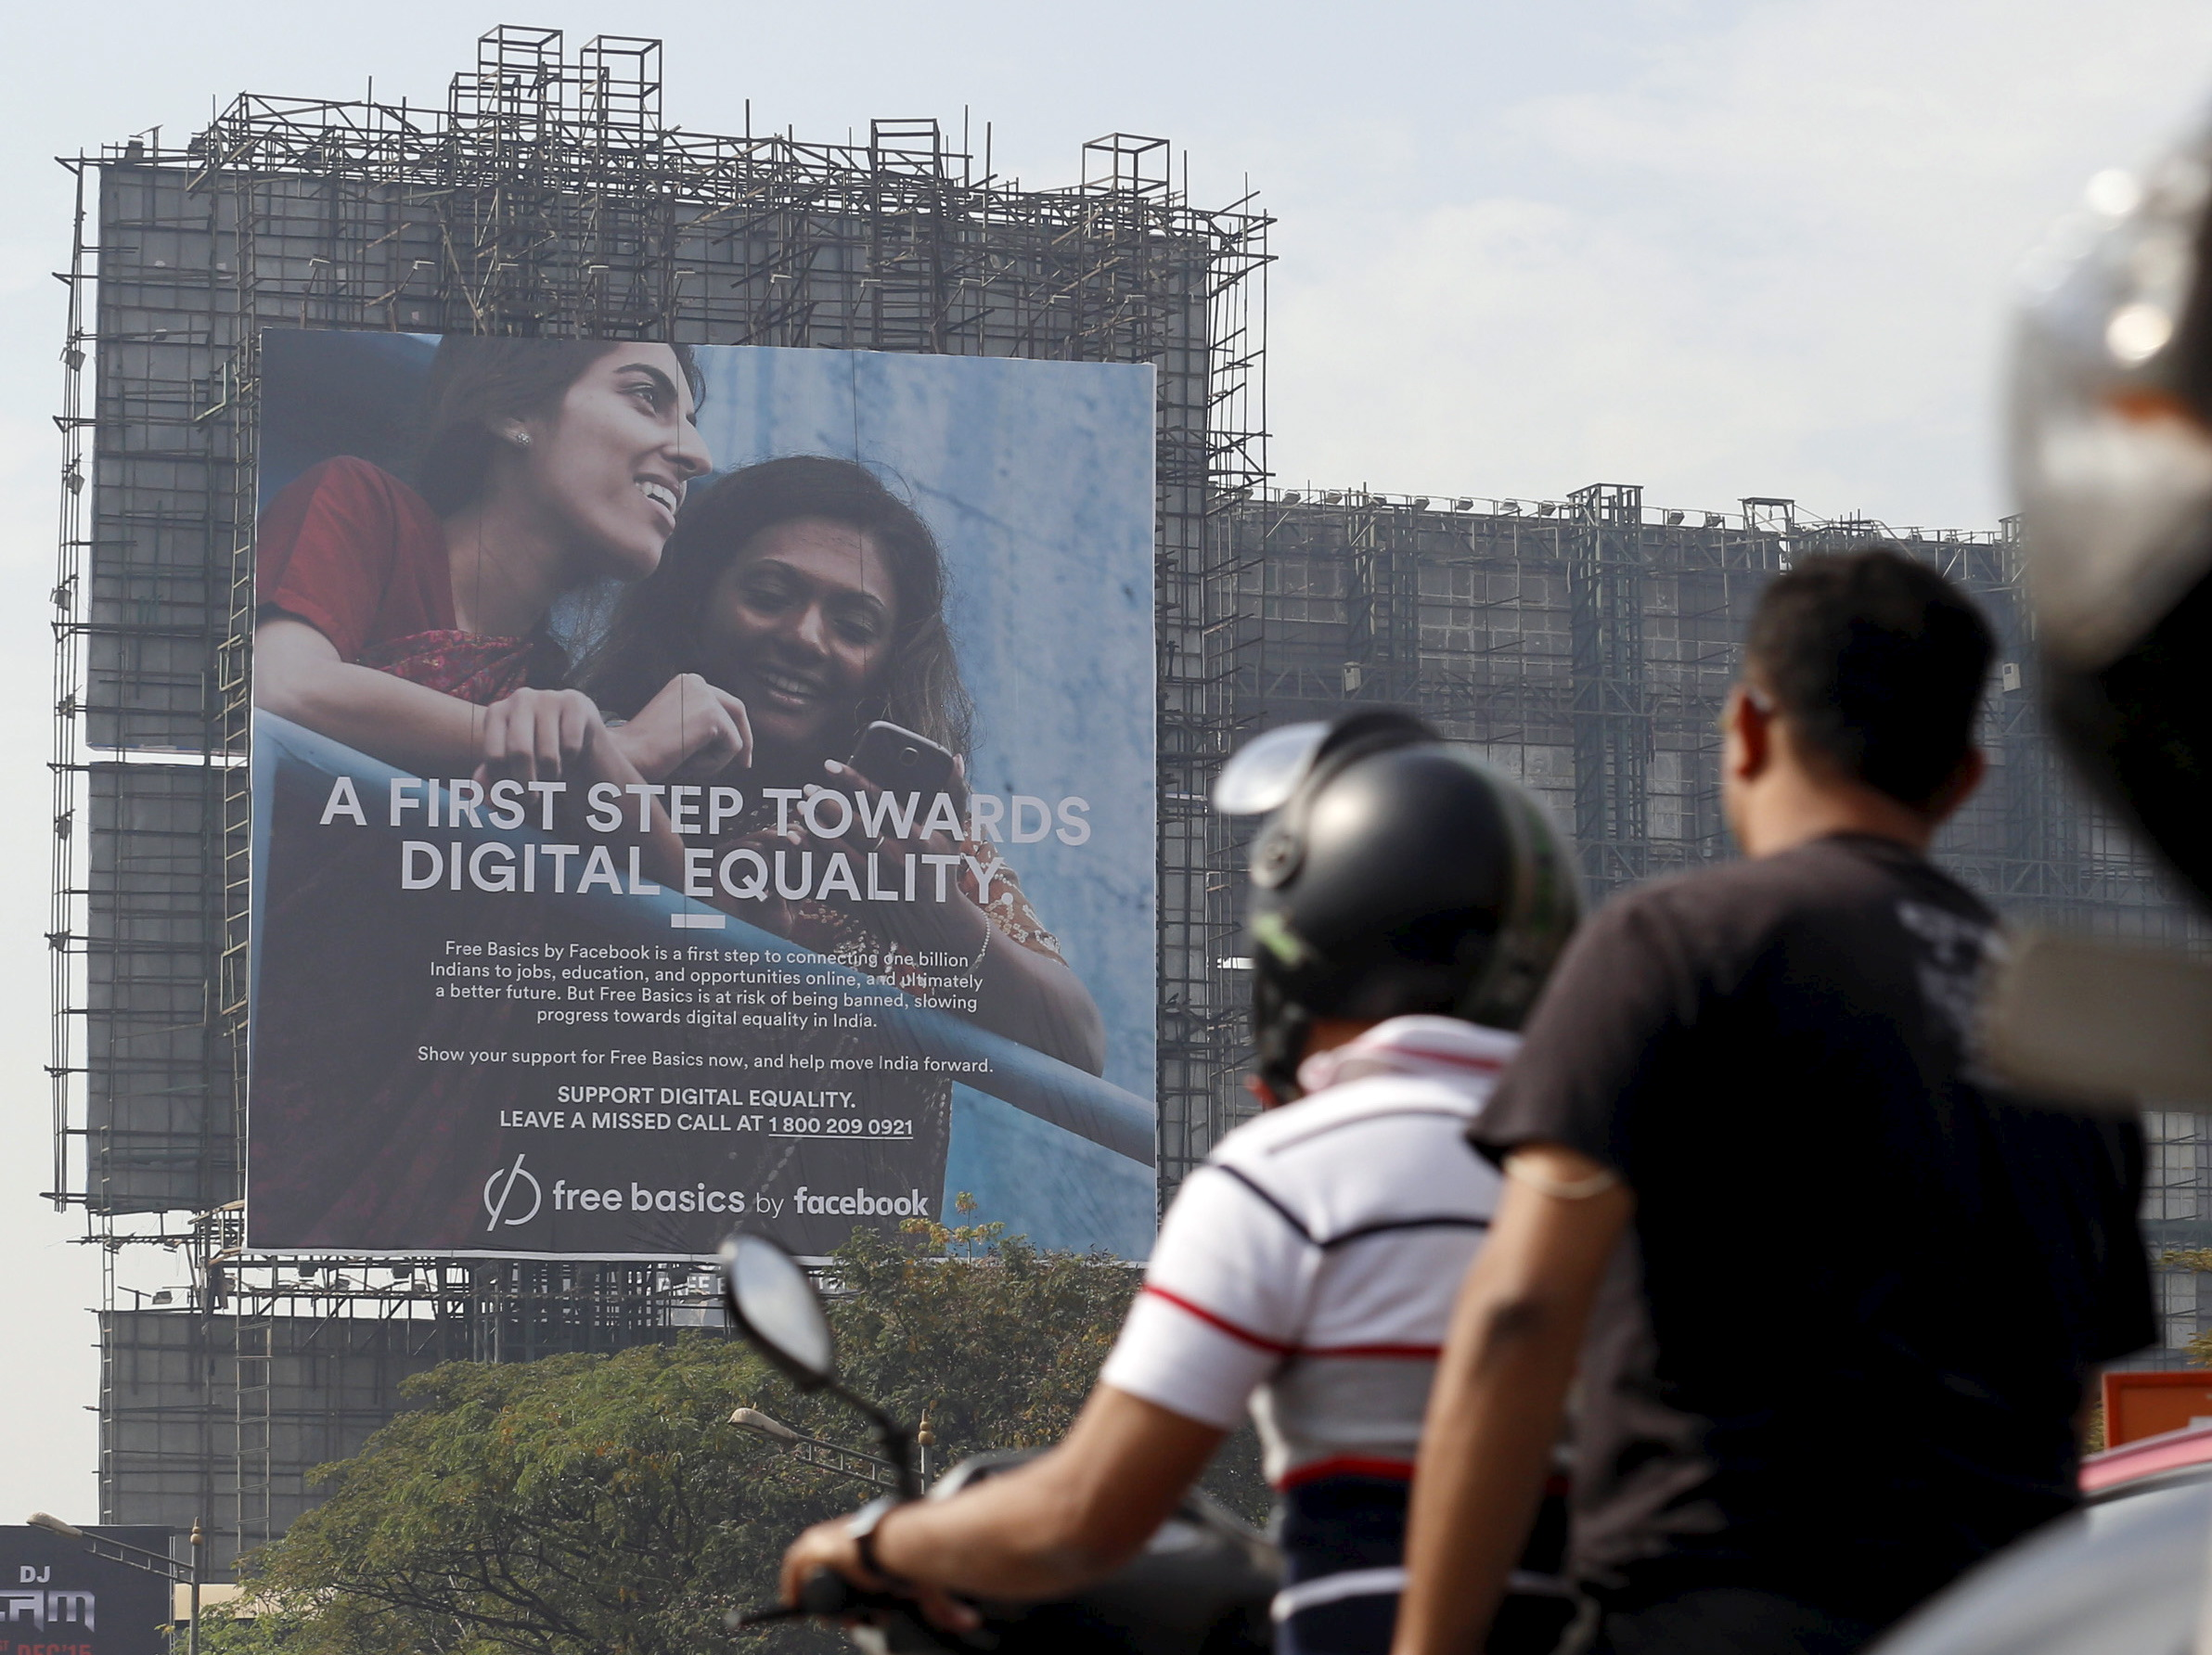 Motorists ride past a billboard displaying Facebook's Free Basics initiative in Mumbai, India, Dec. 30, 2015. Egypt became the second country to temporarily ban the app on Wednesday. (Reuters)